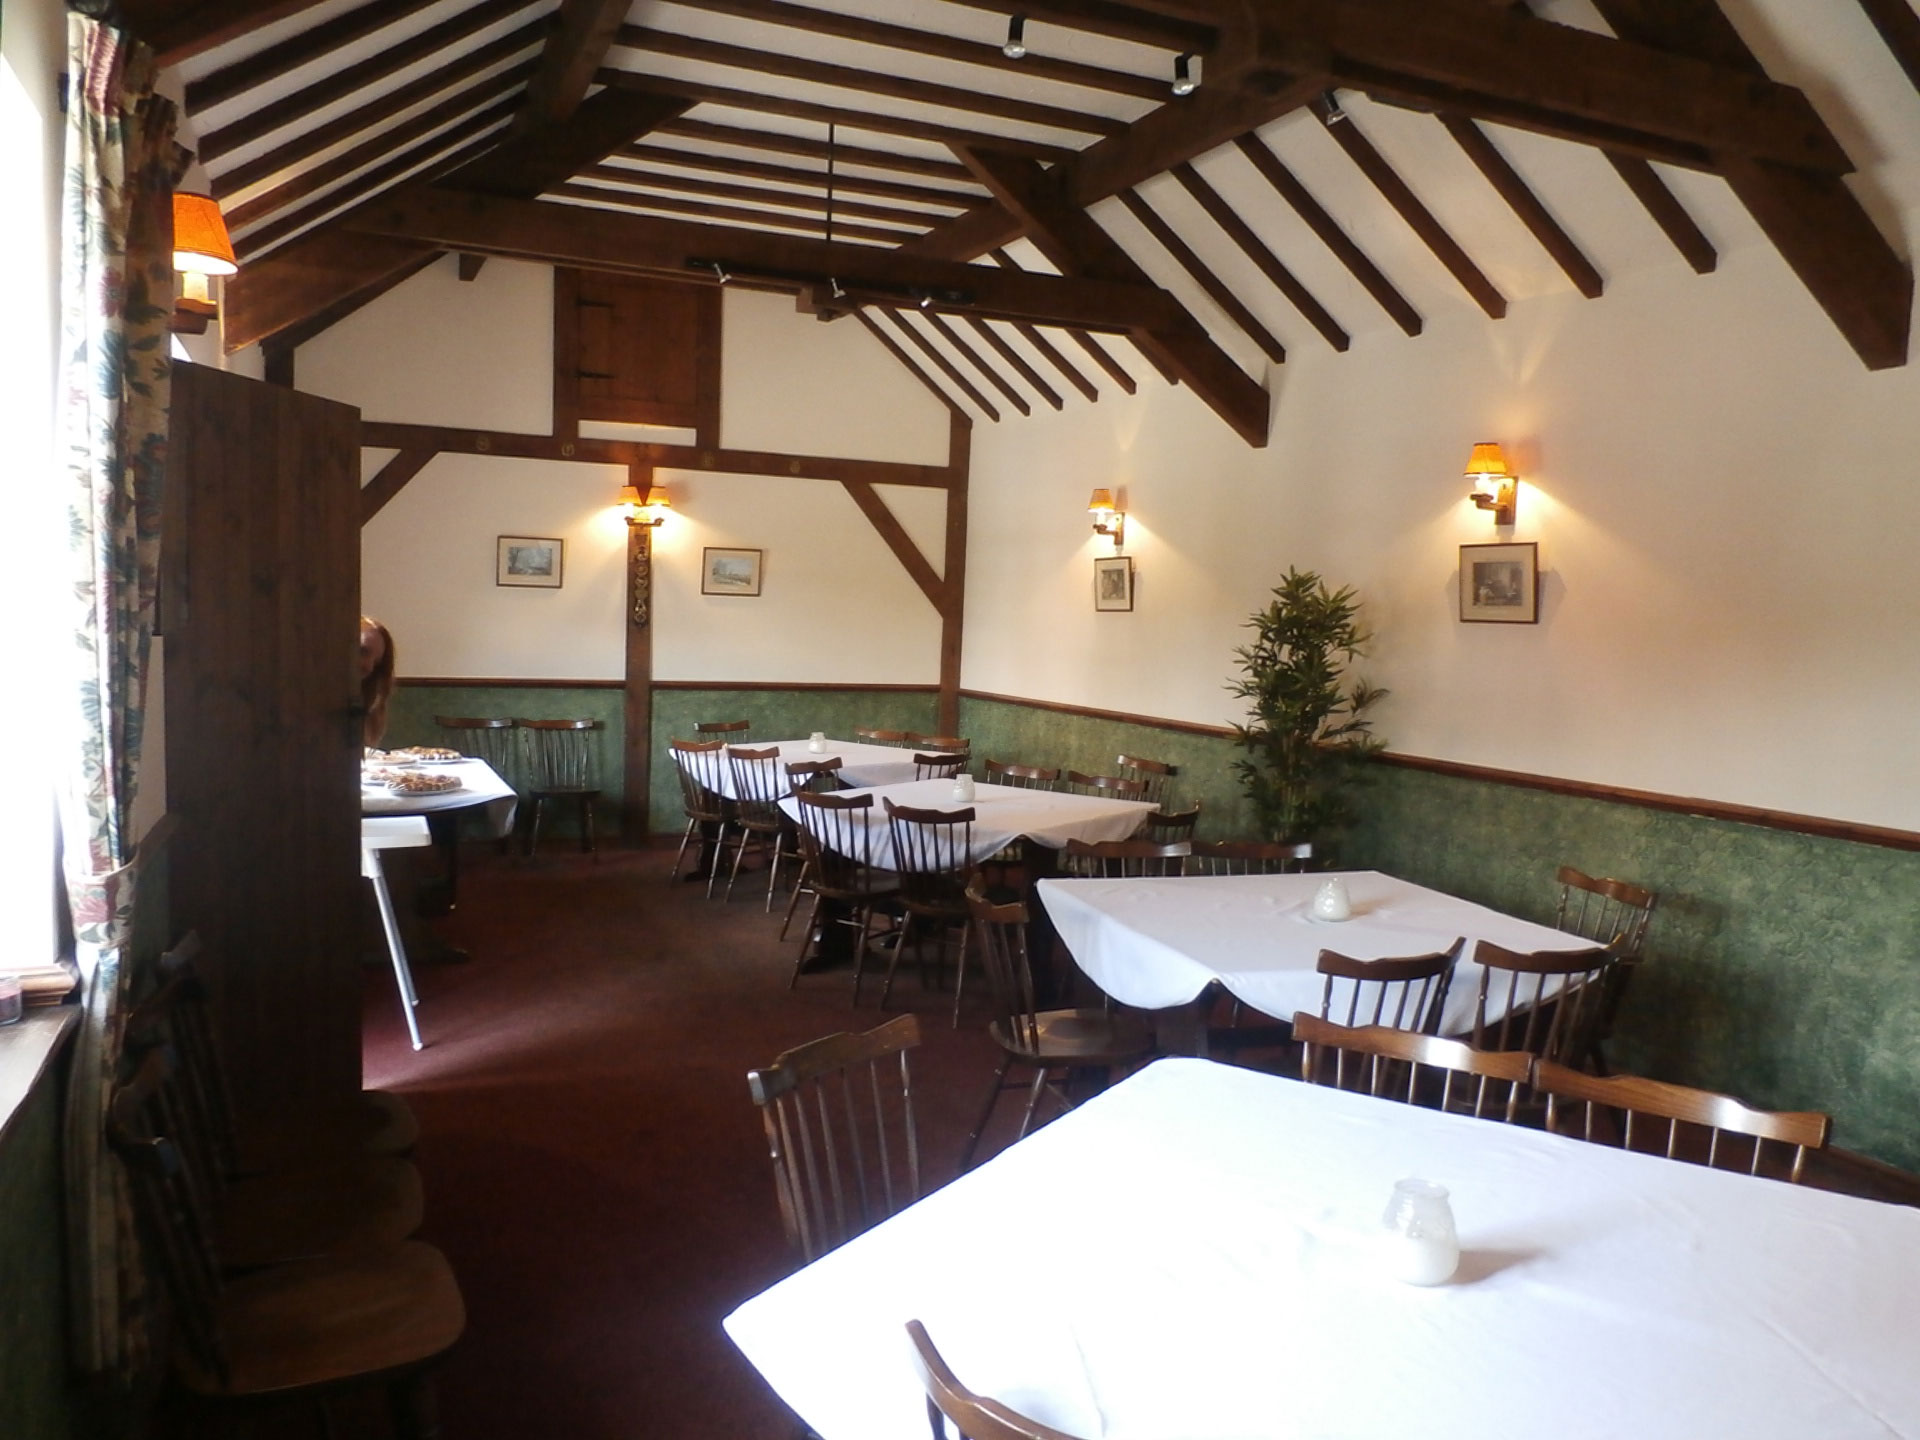 The Bull's Head Function Room